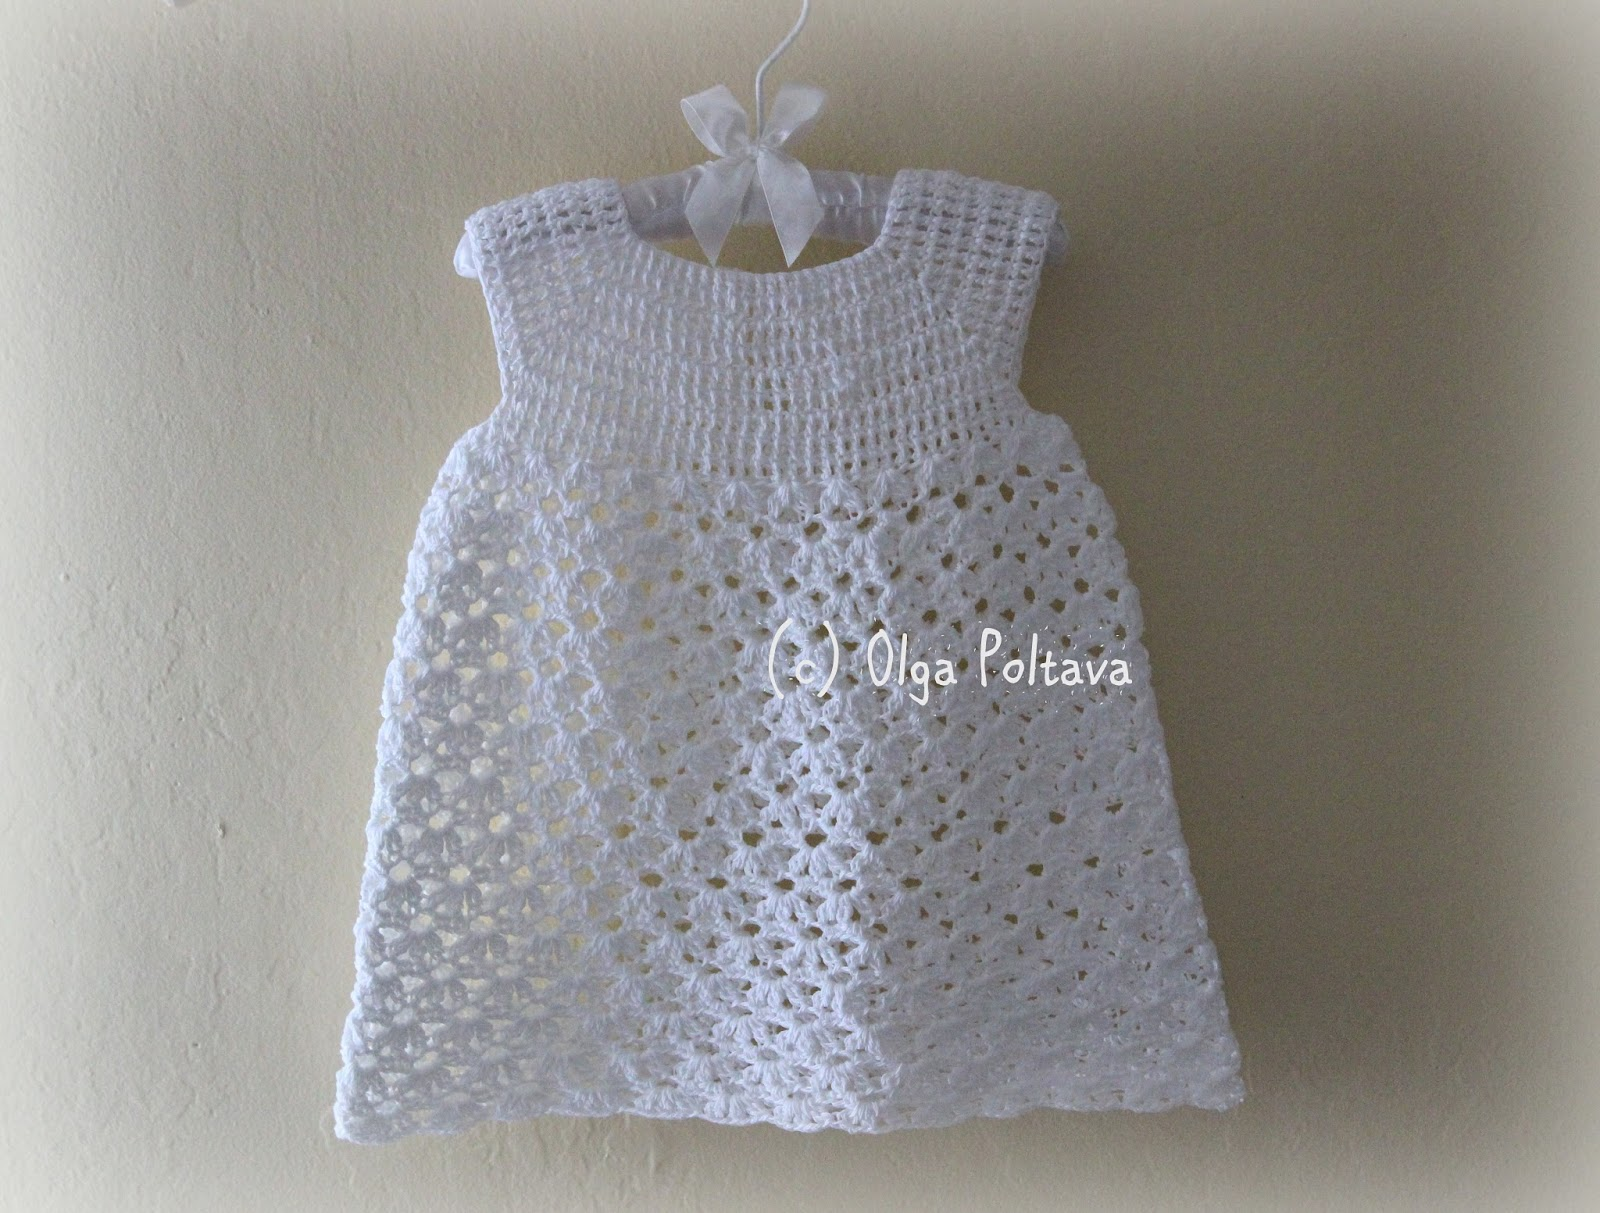 How To Crochet Baby Dress Pattern : Lacy Crochet: Two New Patterns: Baby Dress and Girls Hat